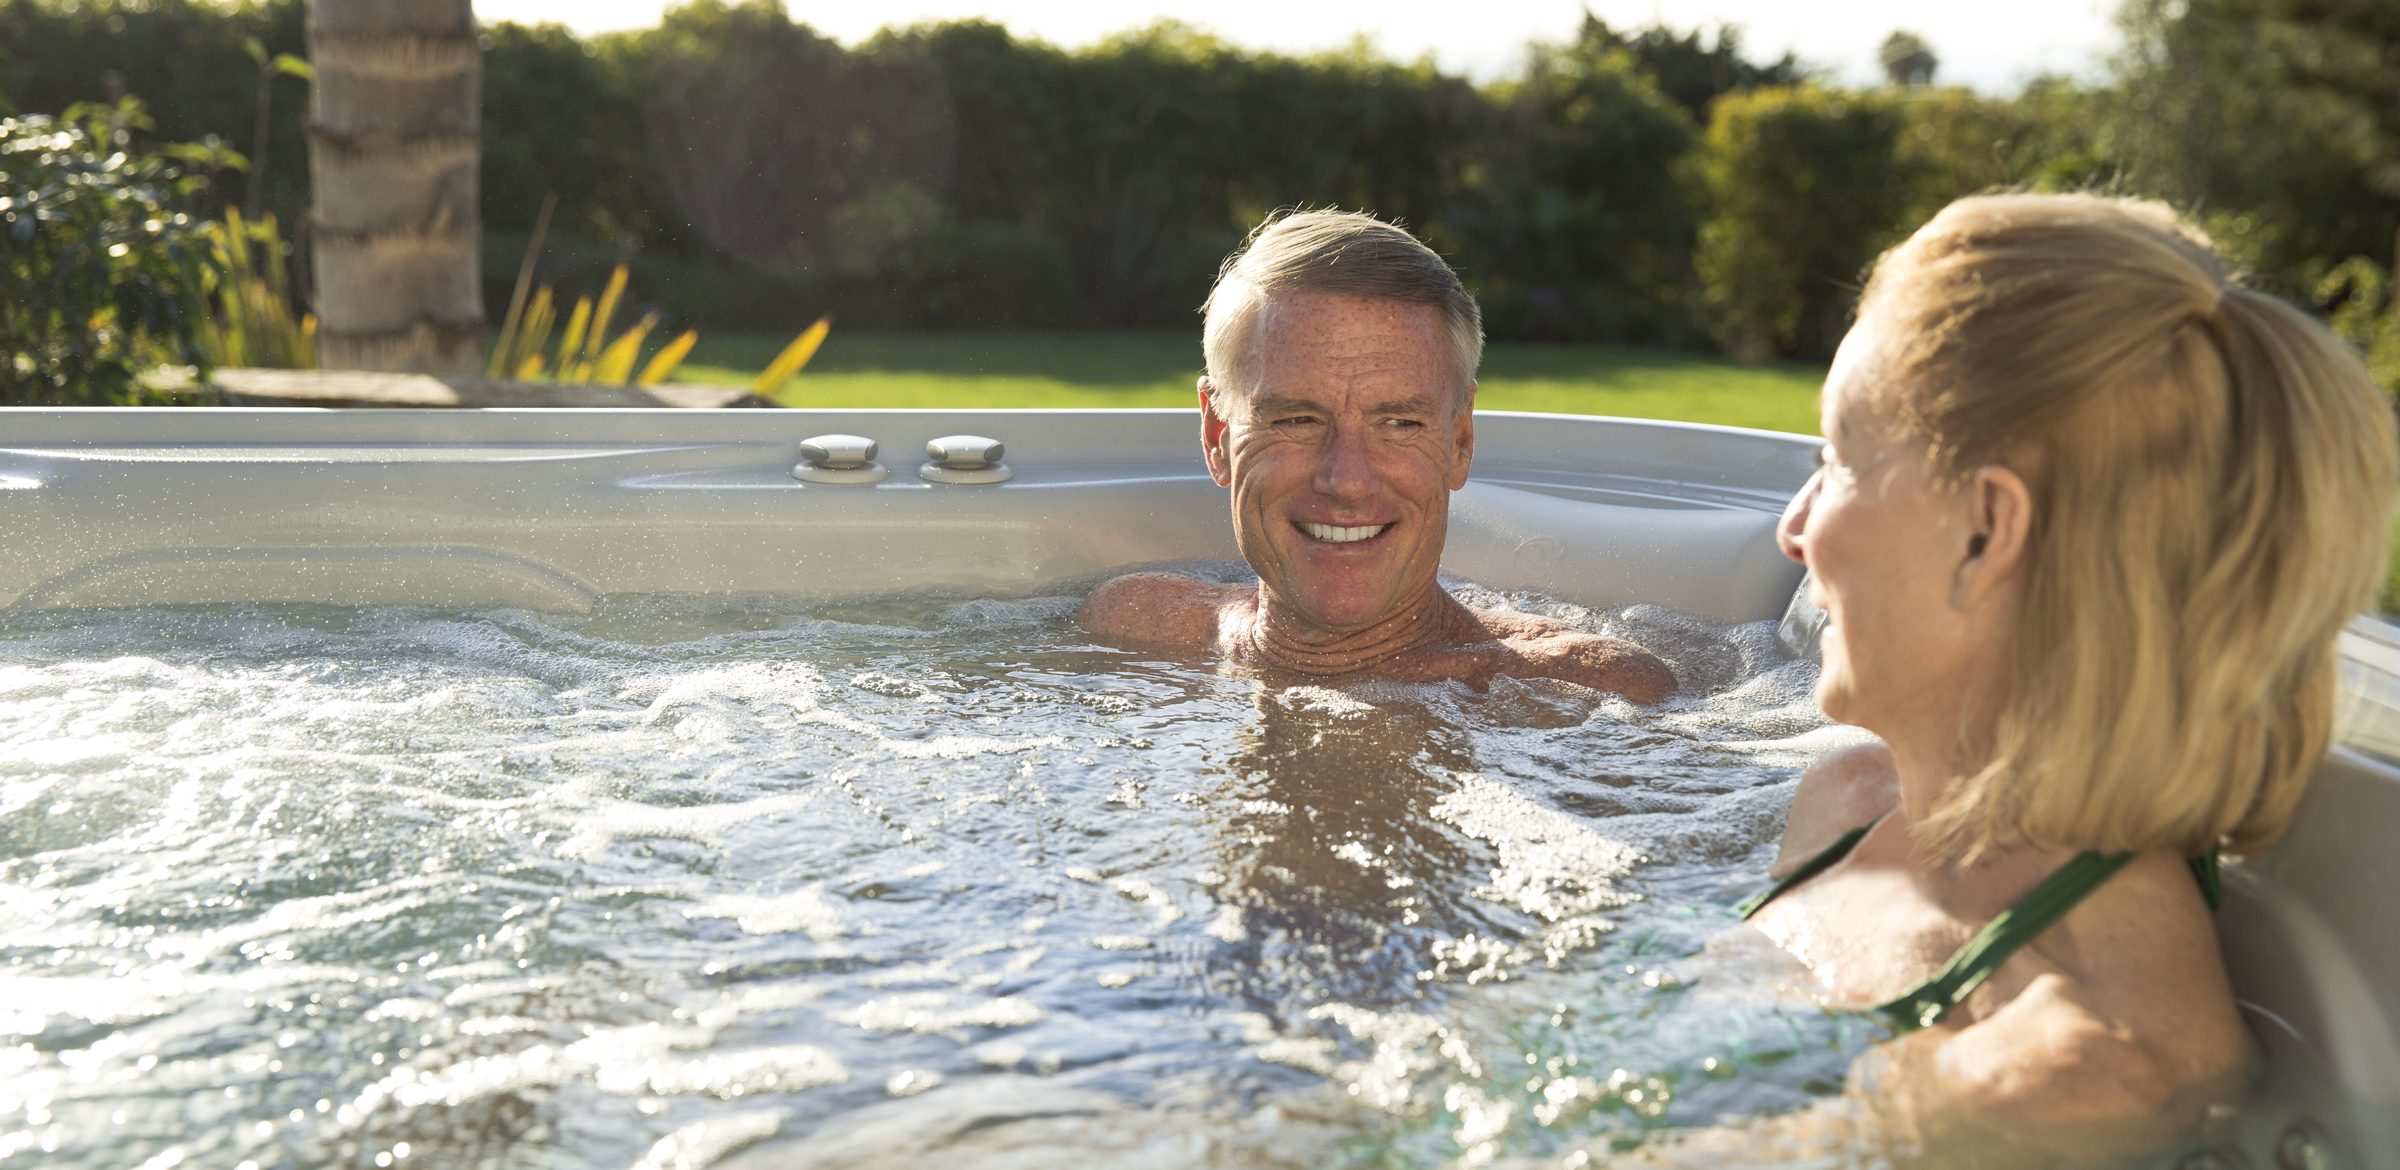 What Ailments Is a Hot Tub Good For?